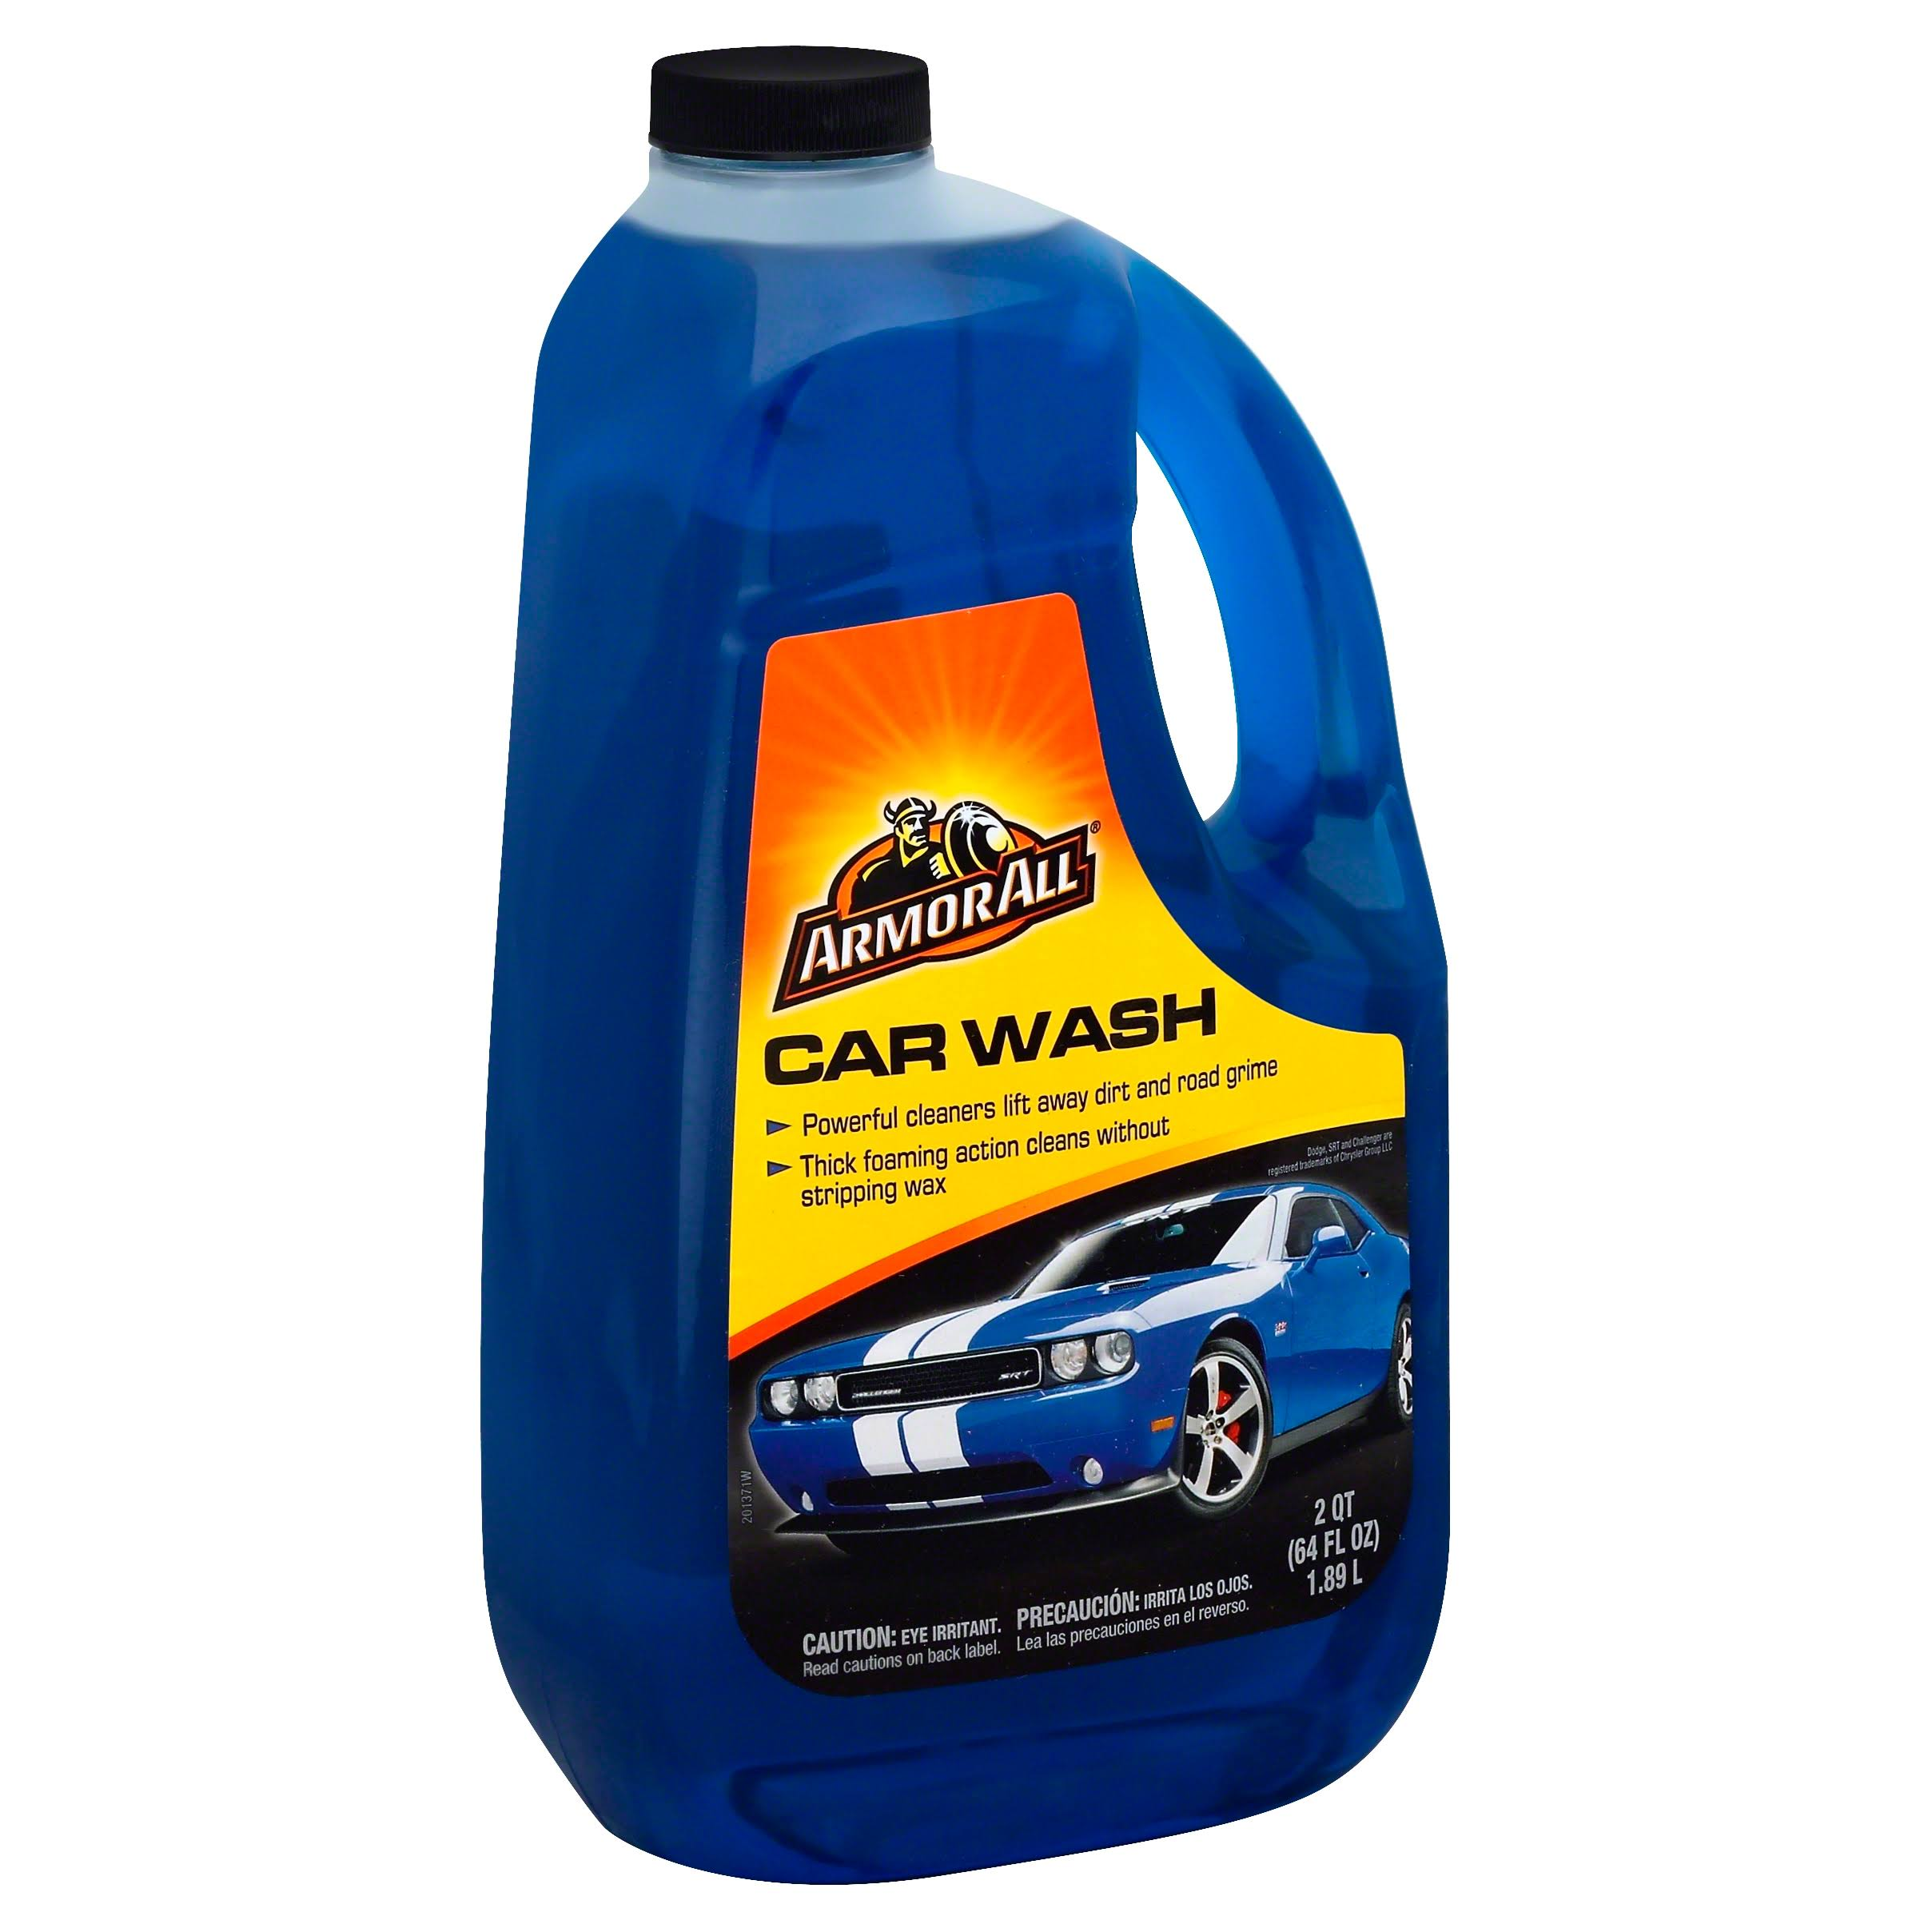 Armor All 25464 Car Wash Concentrated Liquid - 64oz